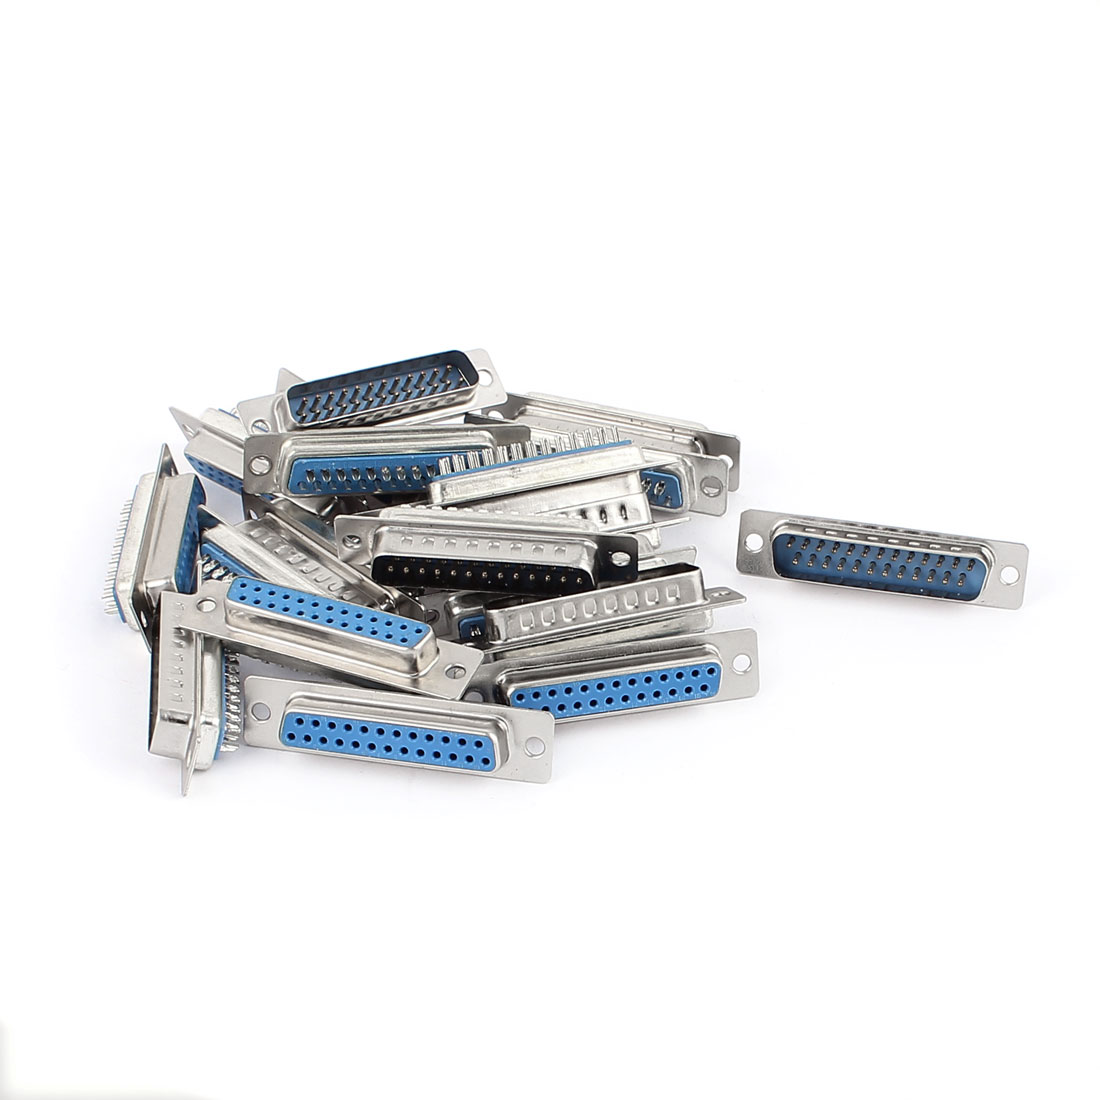 10 Pairs DB25 25P 2-Row Male+Female Computer VGA Cable Connector Adapter